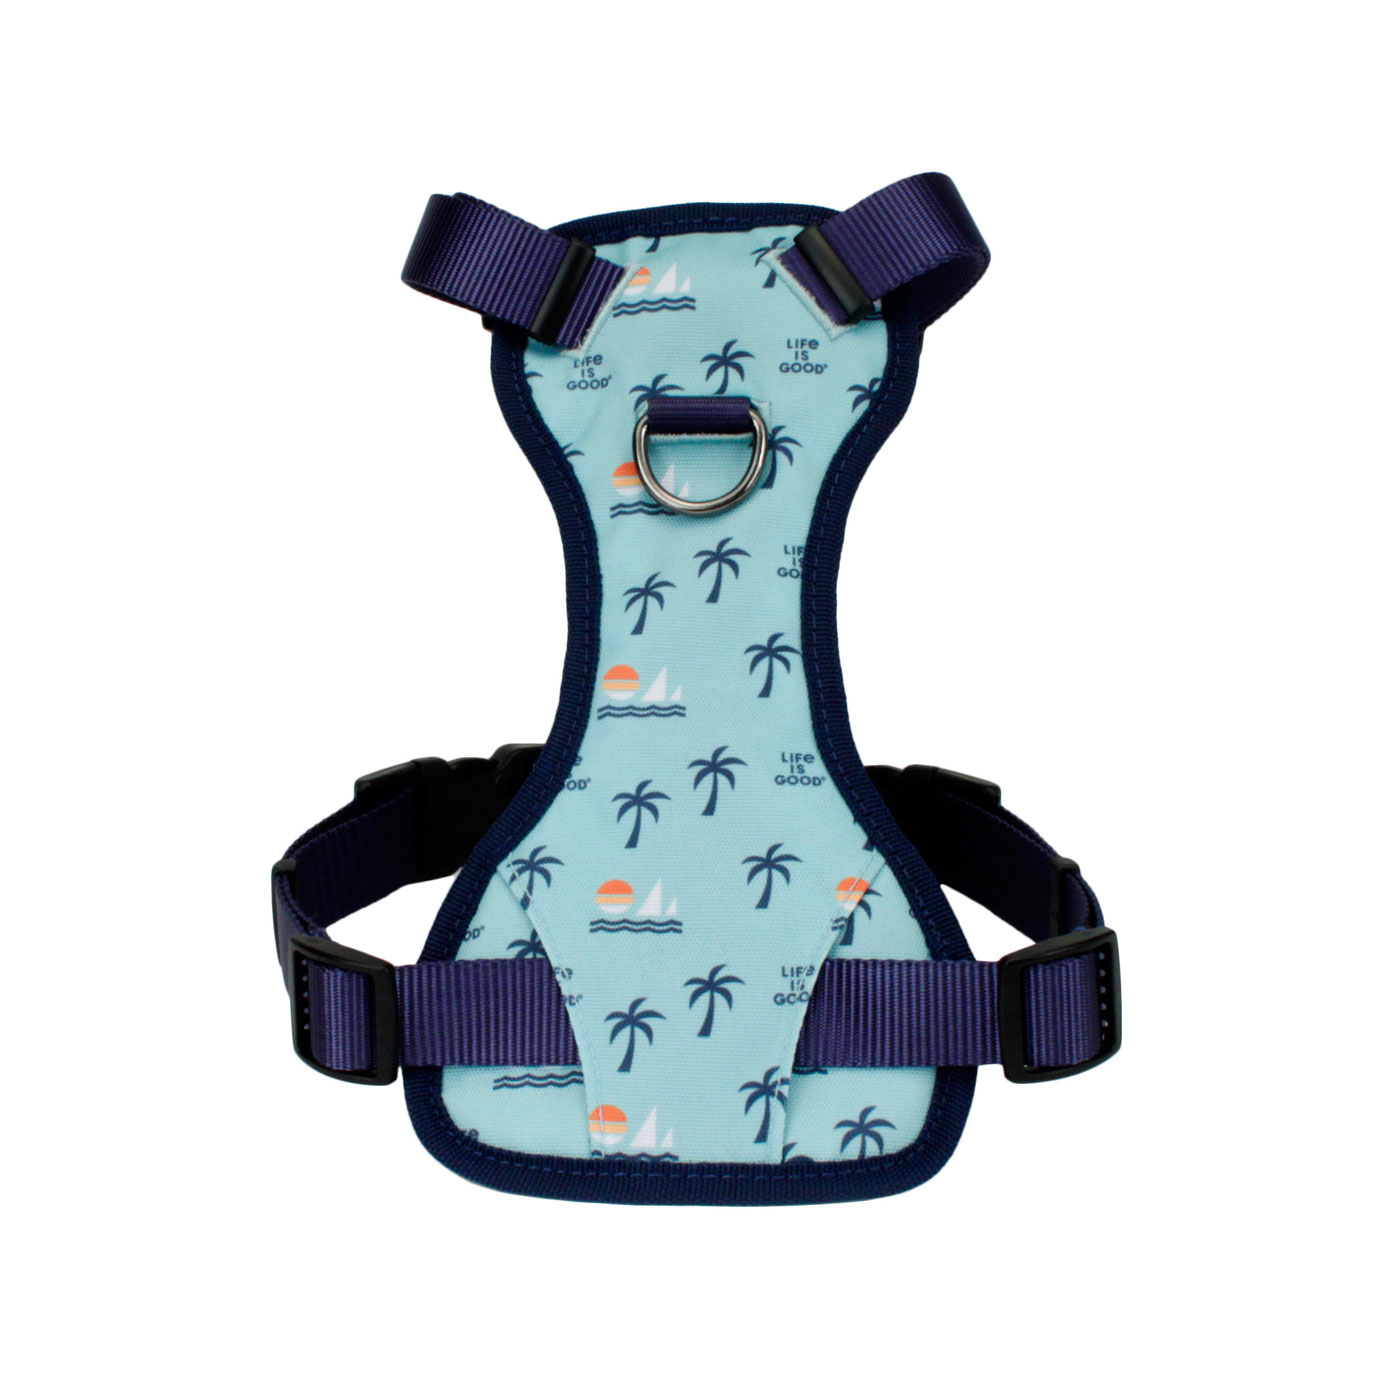 Life is Good® Canvas Overlay Dog Harness